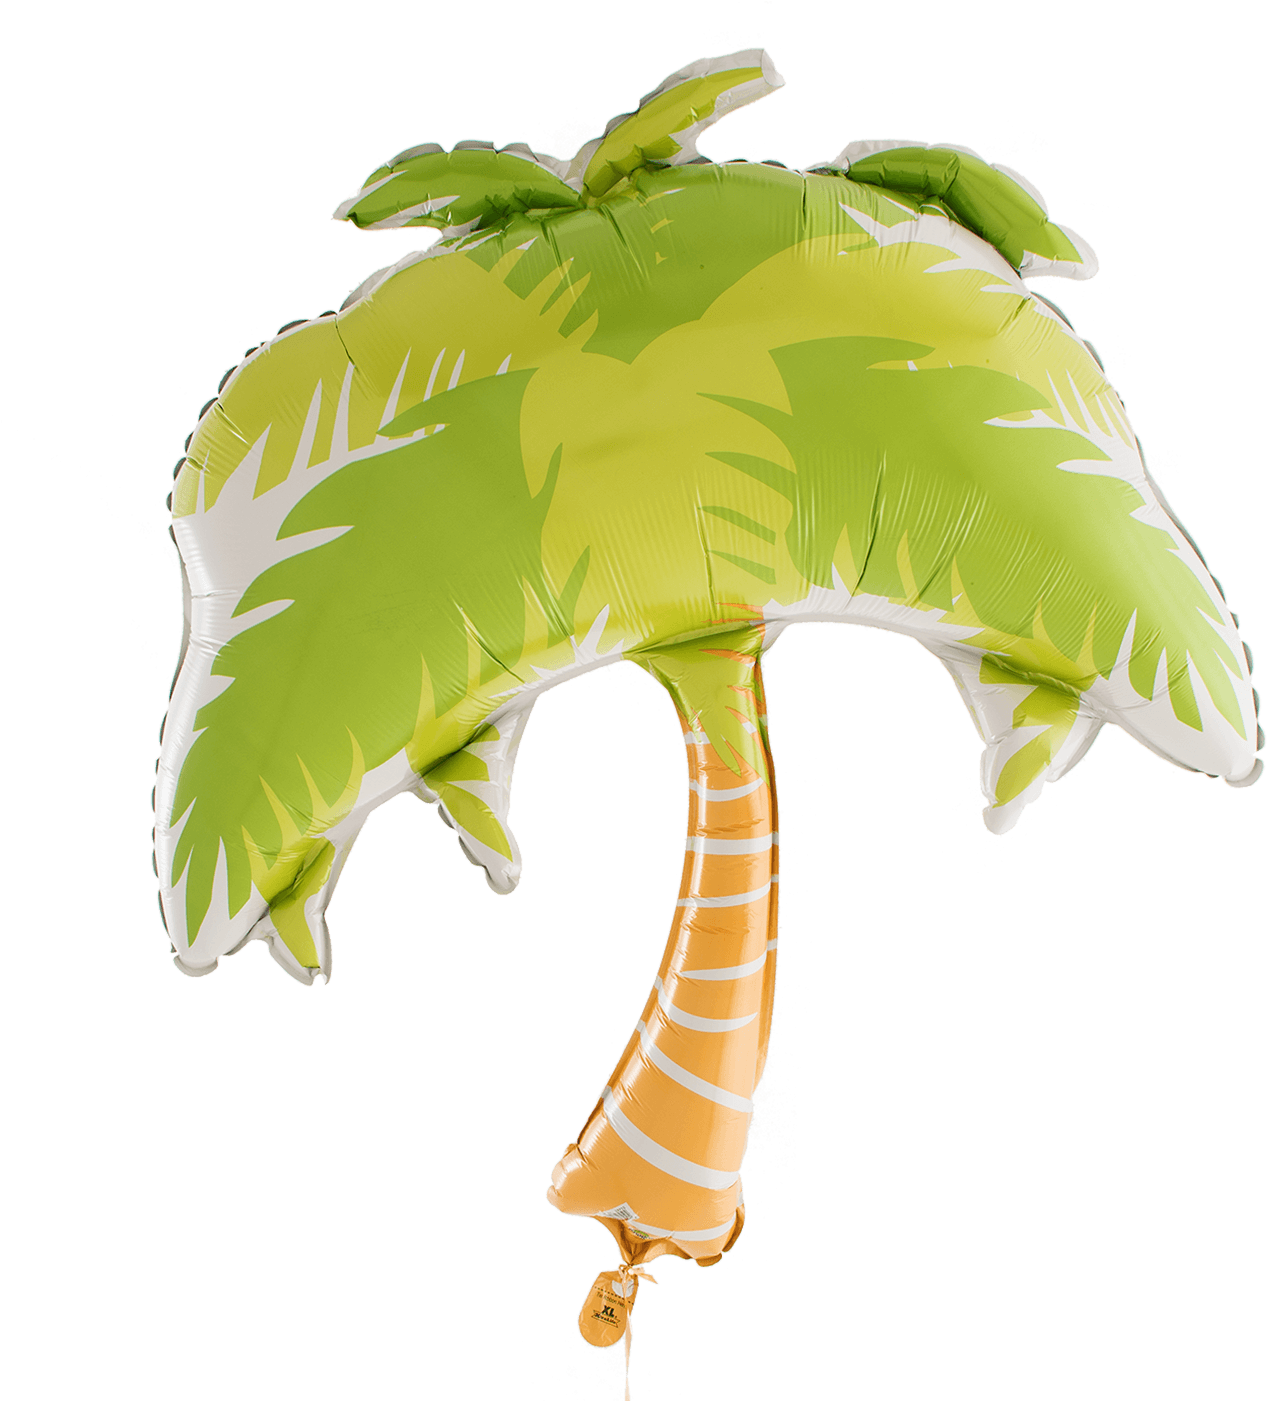 Transparent palm tree leaves clipart - Palm Tree Leaves Png - Palm Tree